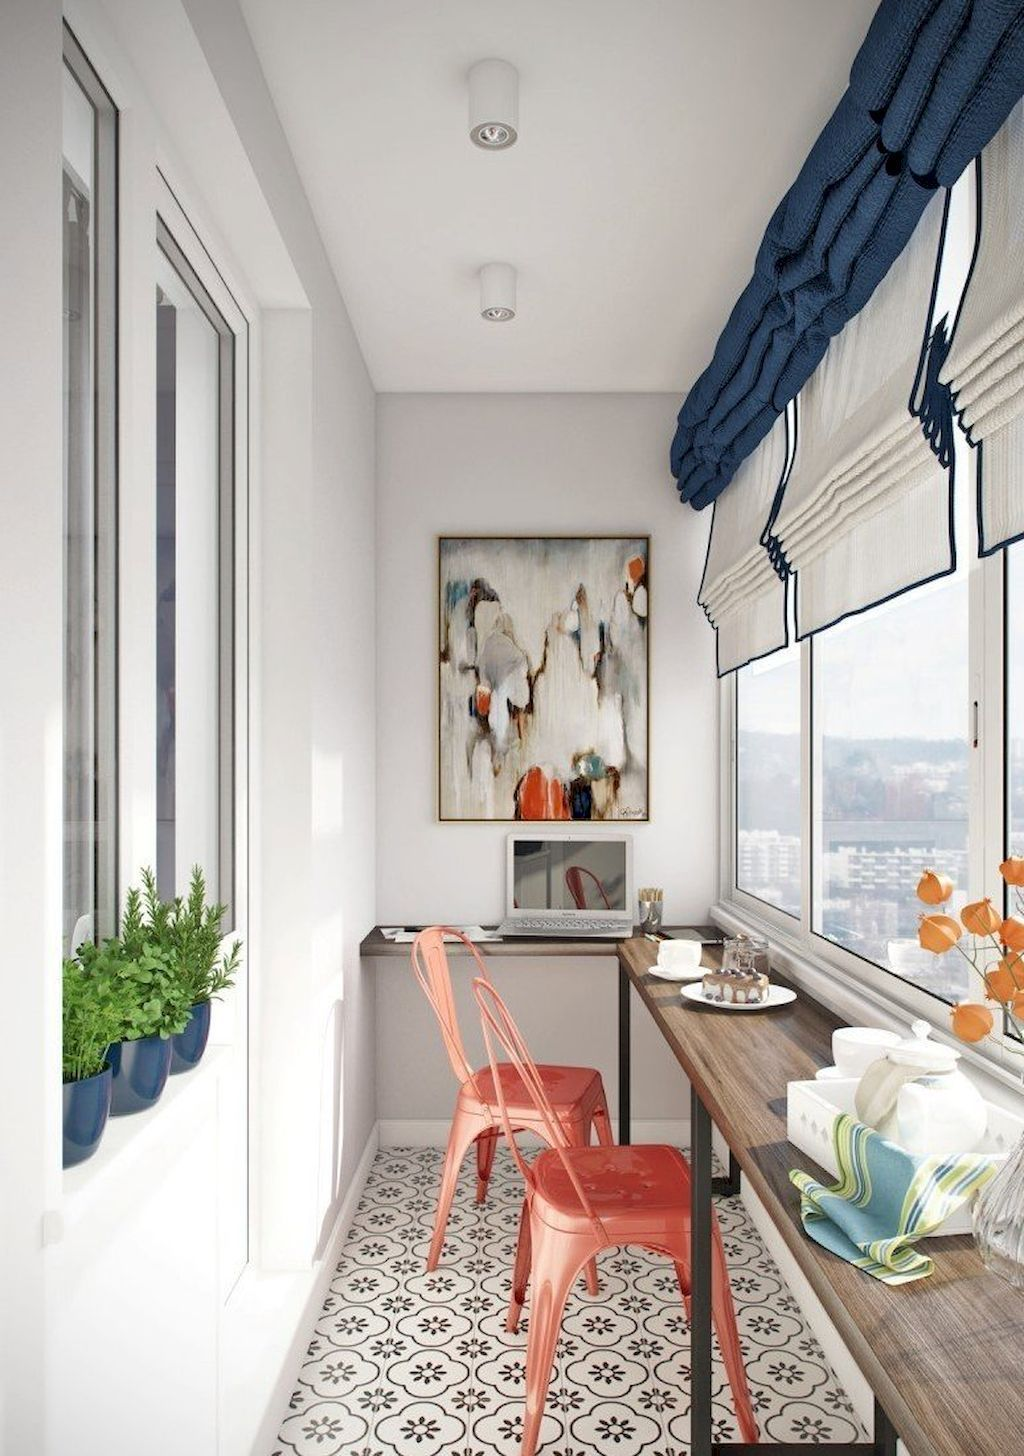 Awesome 75 Cozy Small Balcony Design And Decorating Ideas  Https://wholiving.com